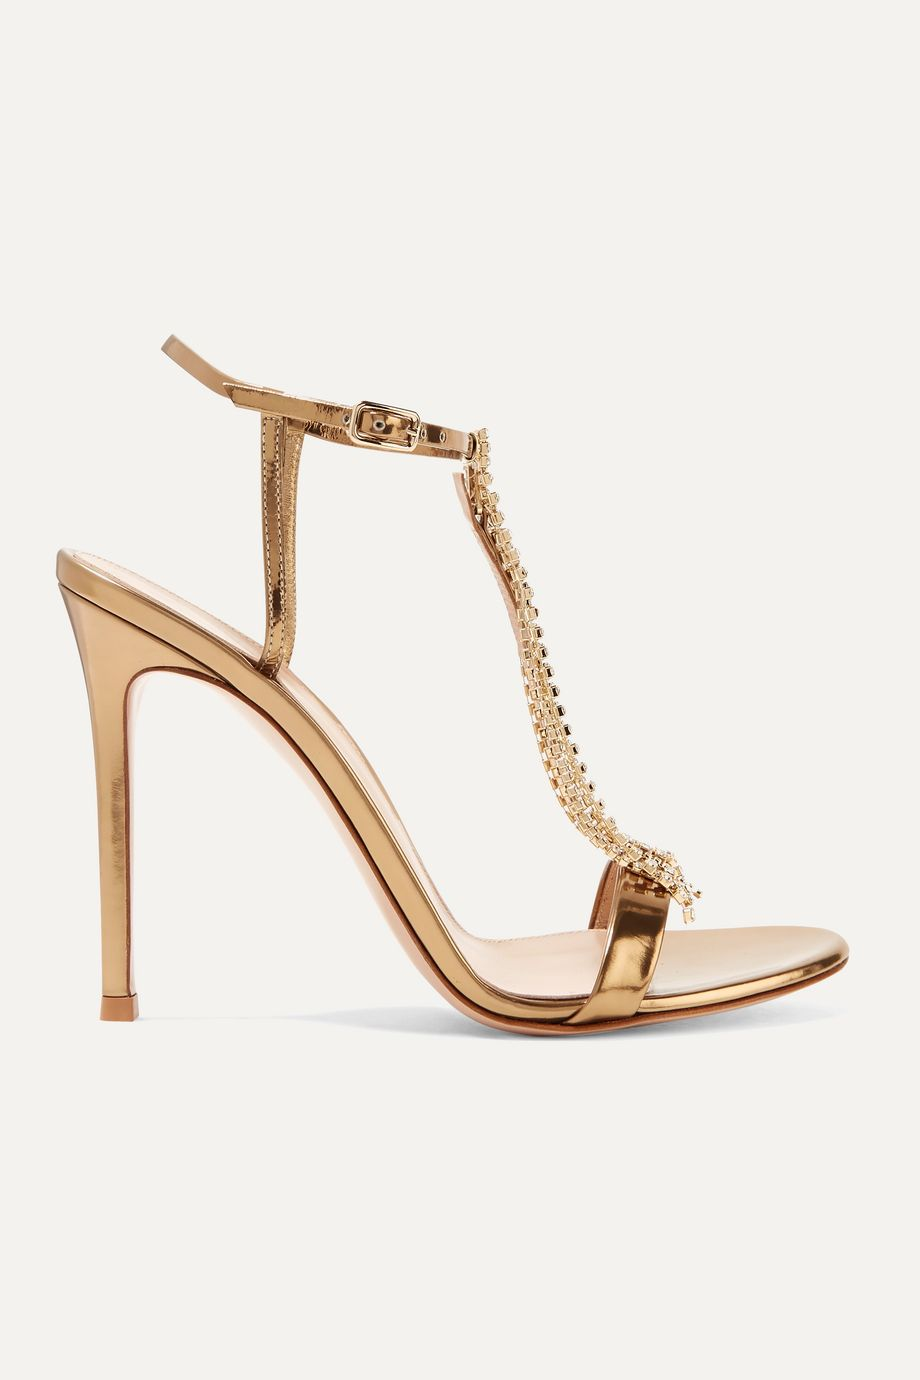 Gianvito Rossi 105 crystal-embellished metallic leather sandals